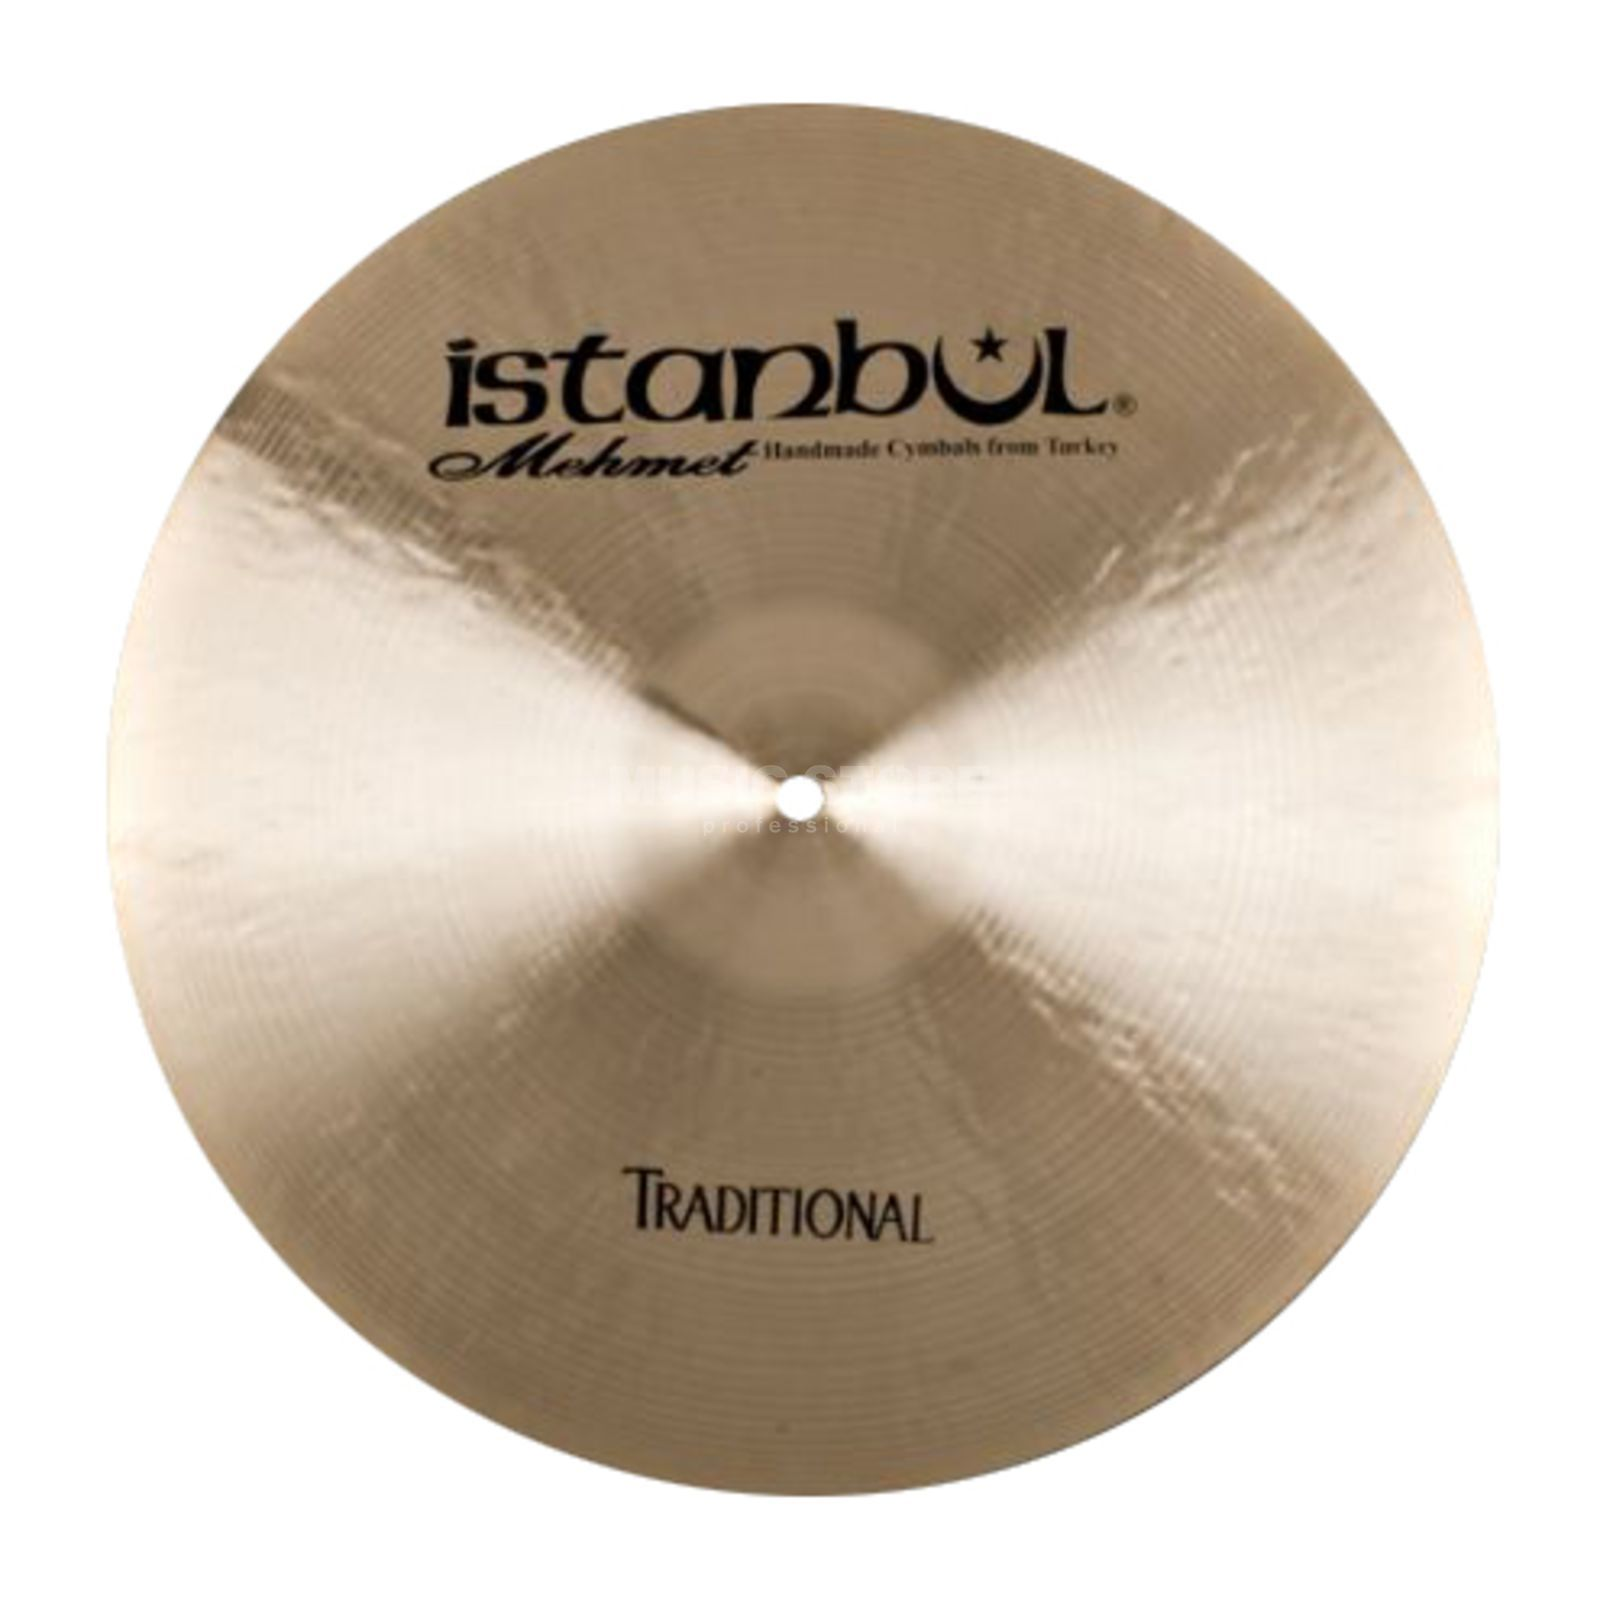 "Istanbul Traditional Dark Crash 14"", CD15 Изображение товара"